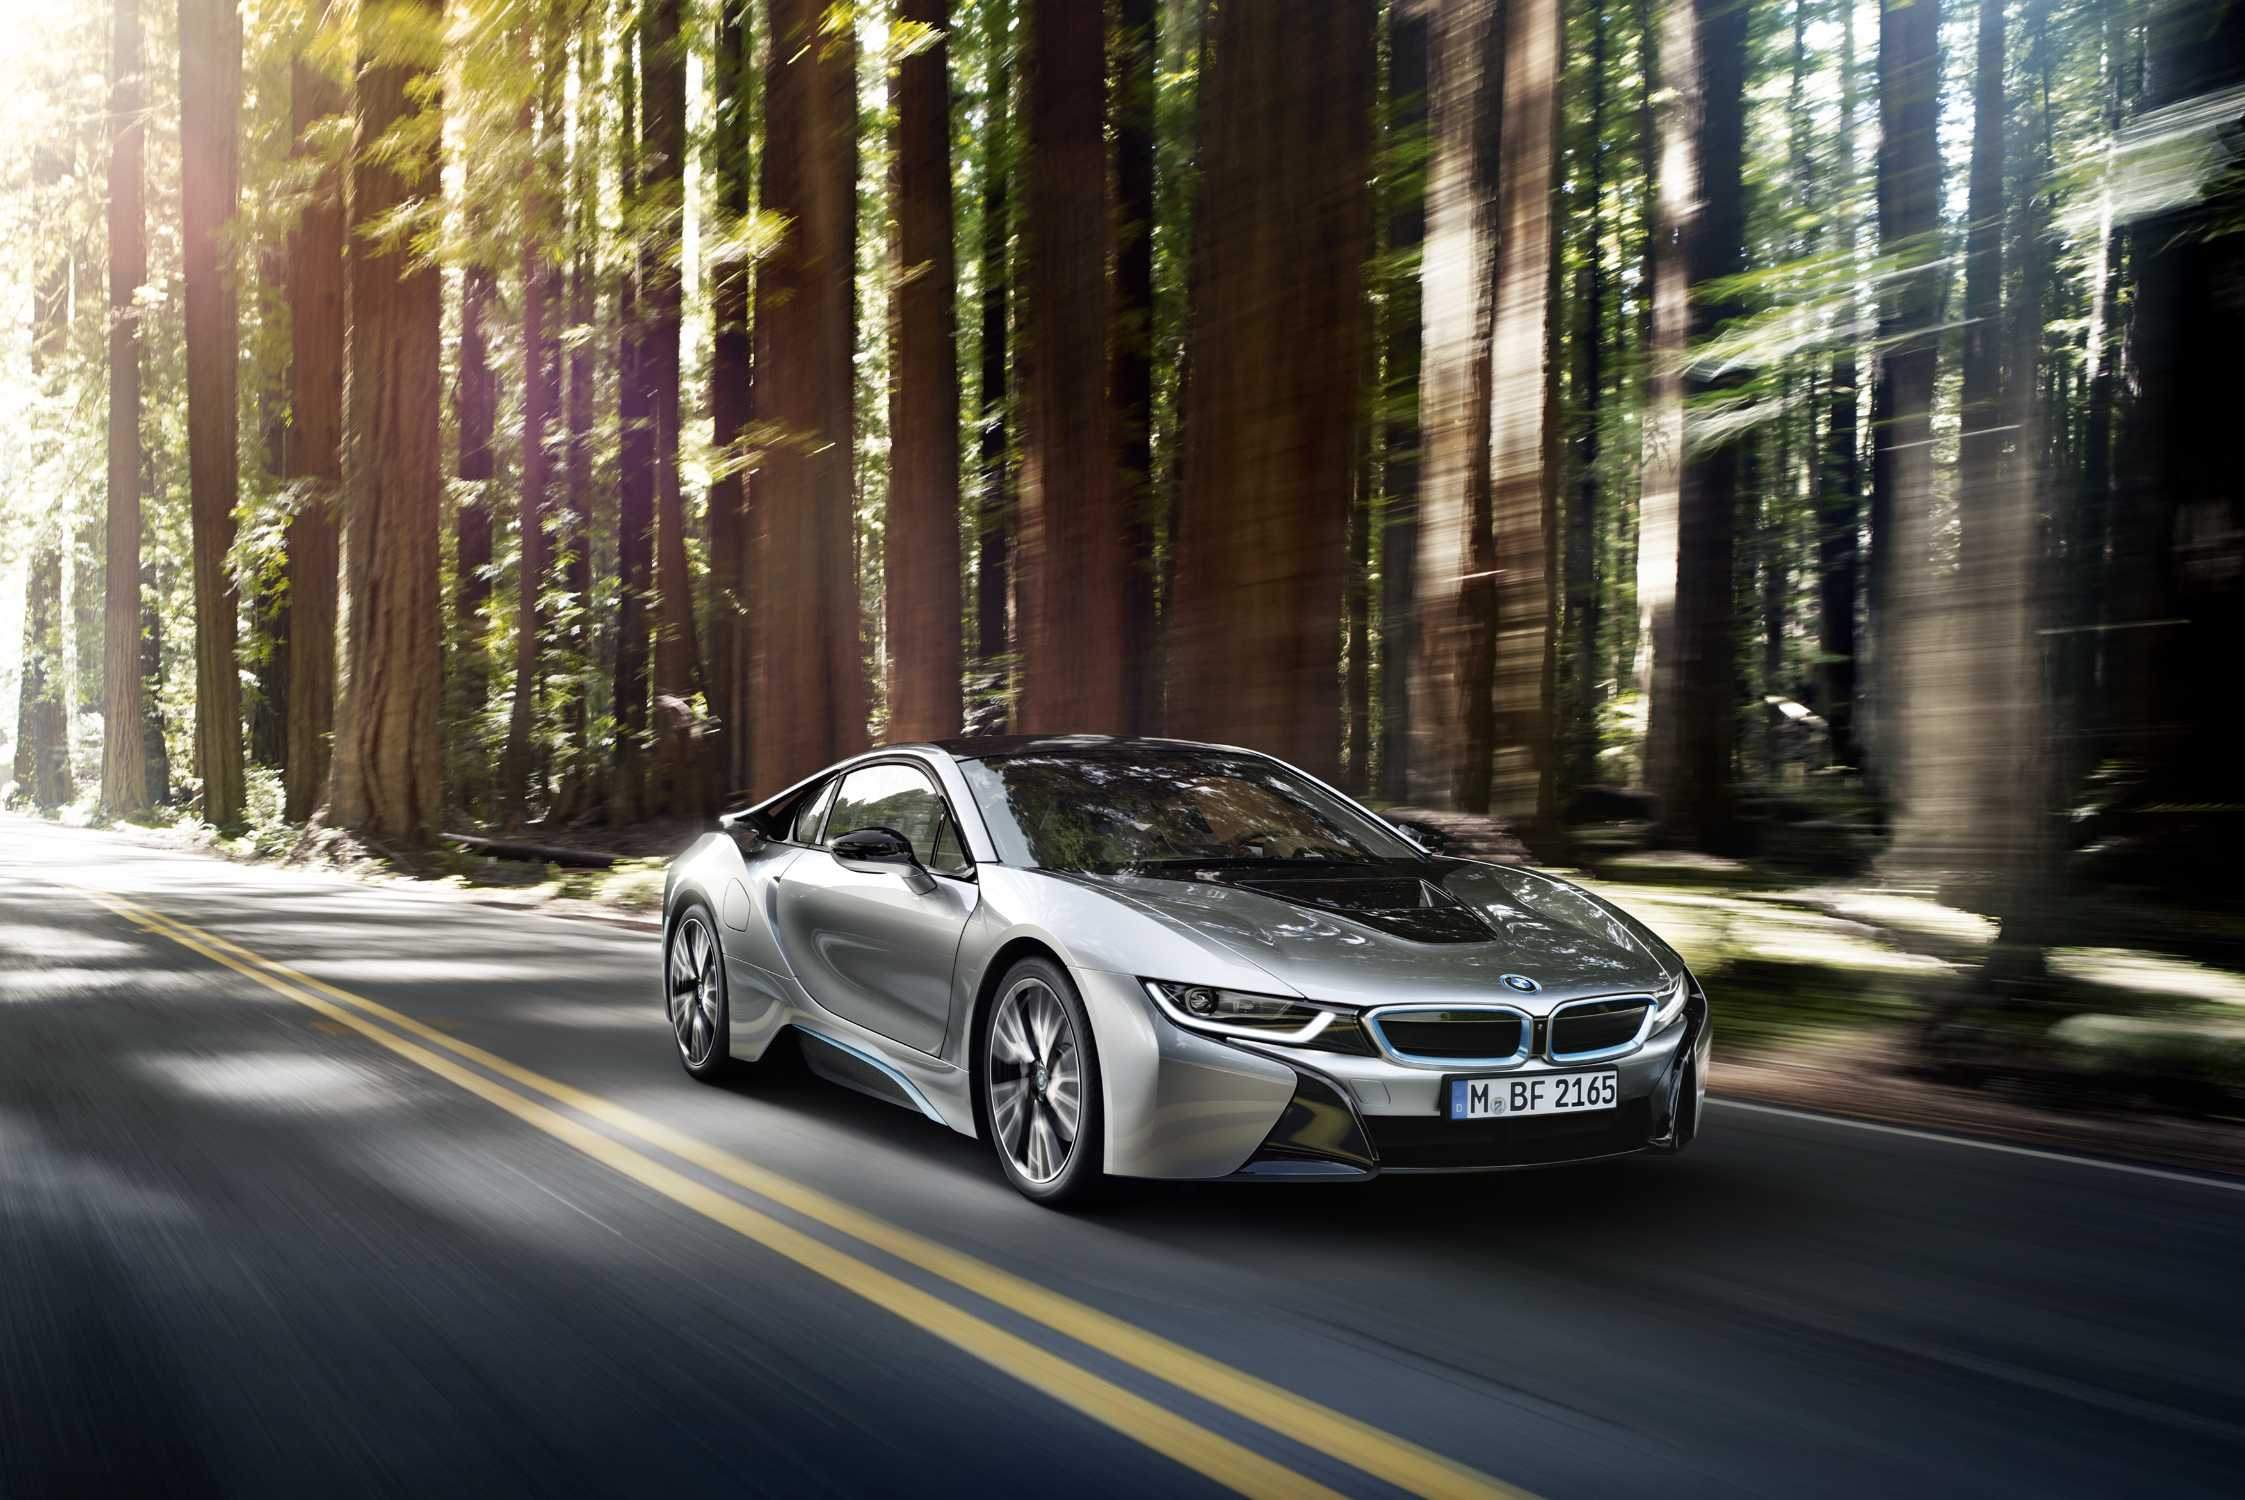 The Bmw I8 Ushering In A New Era Of Sustainable Performance Priced